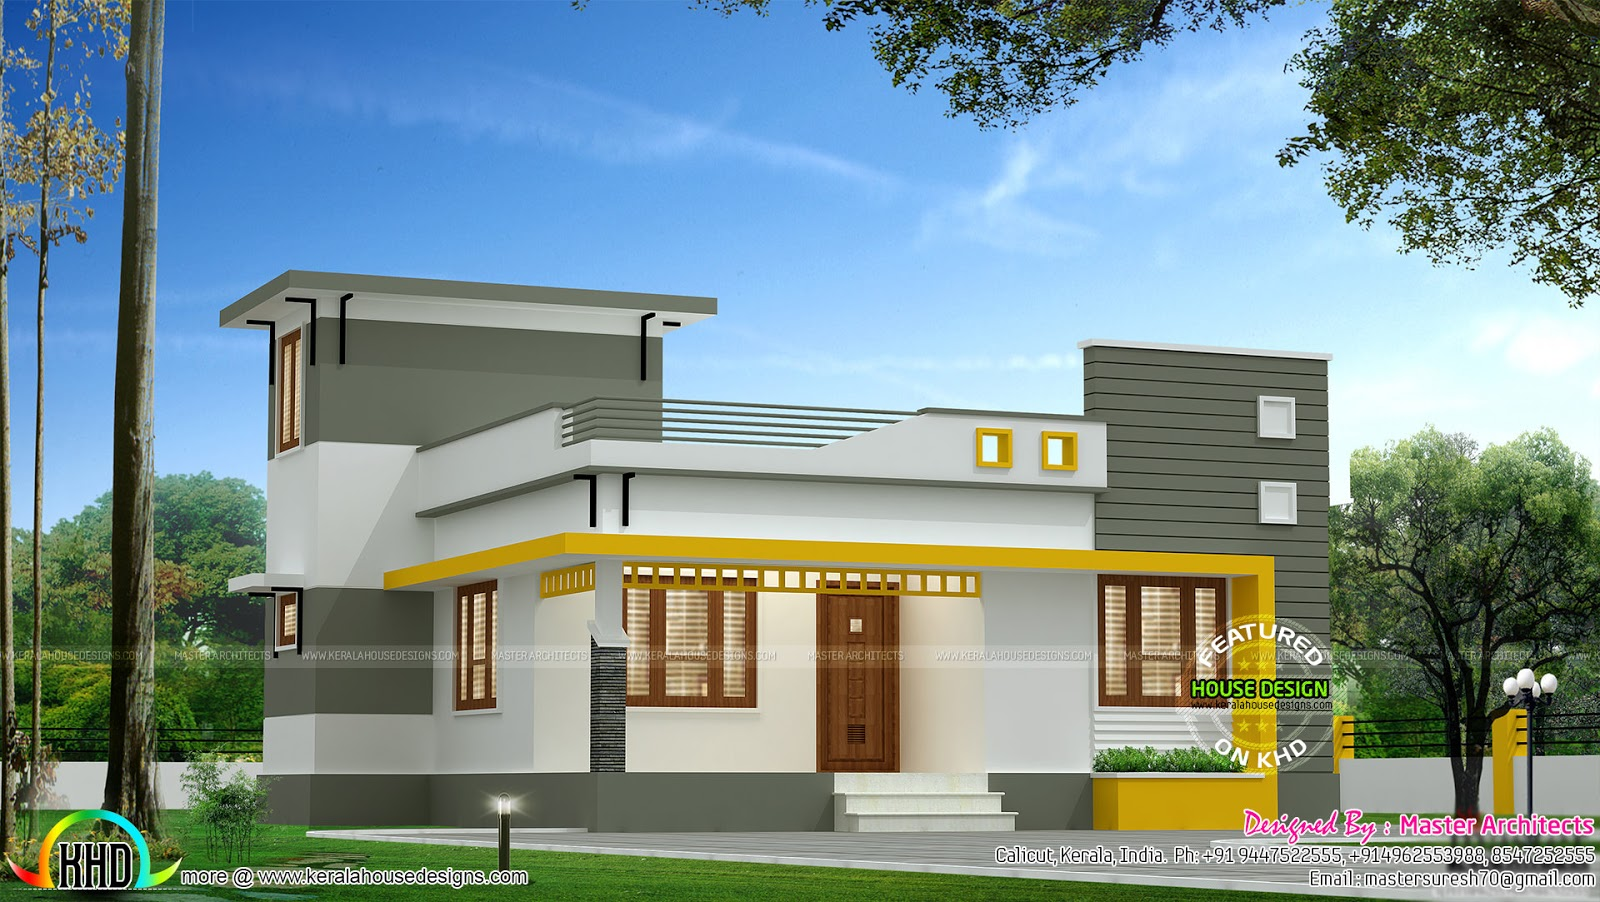 3 bedroom single floor modern architecture home kerala House designs single floor